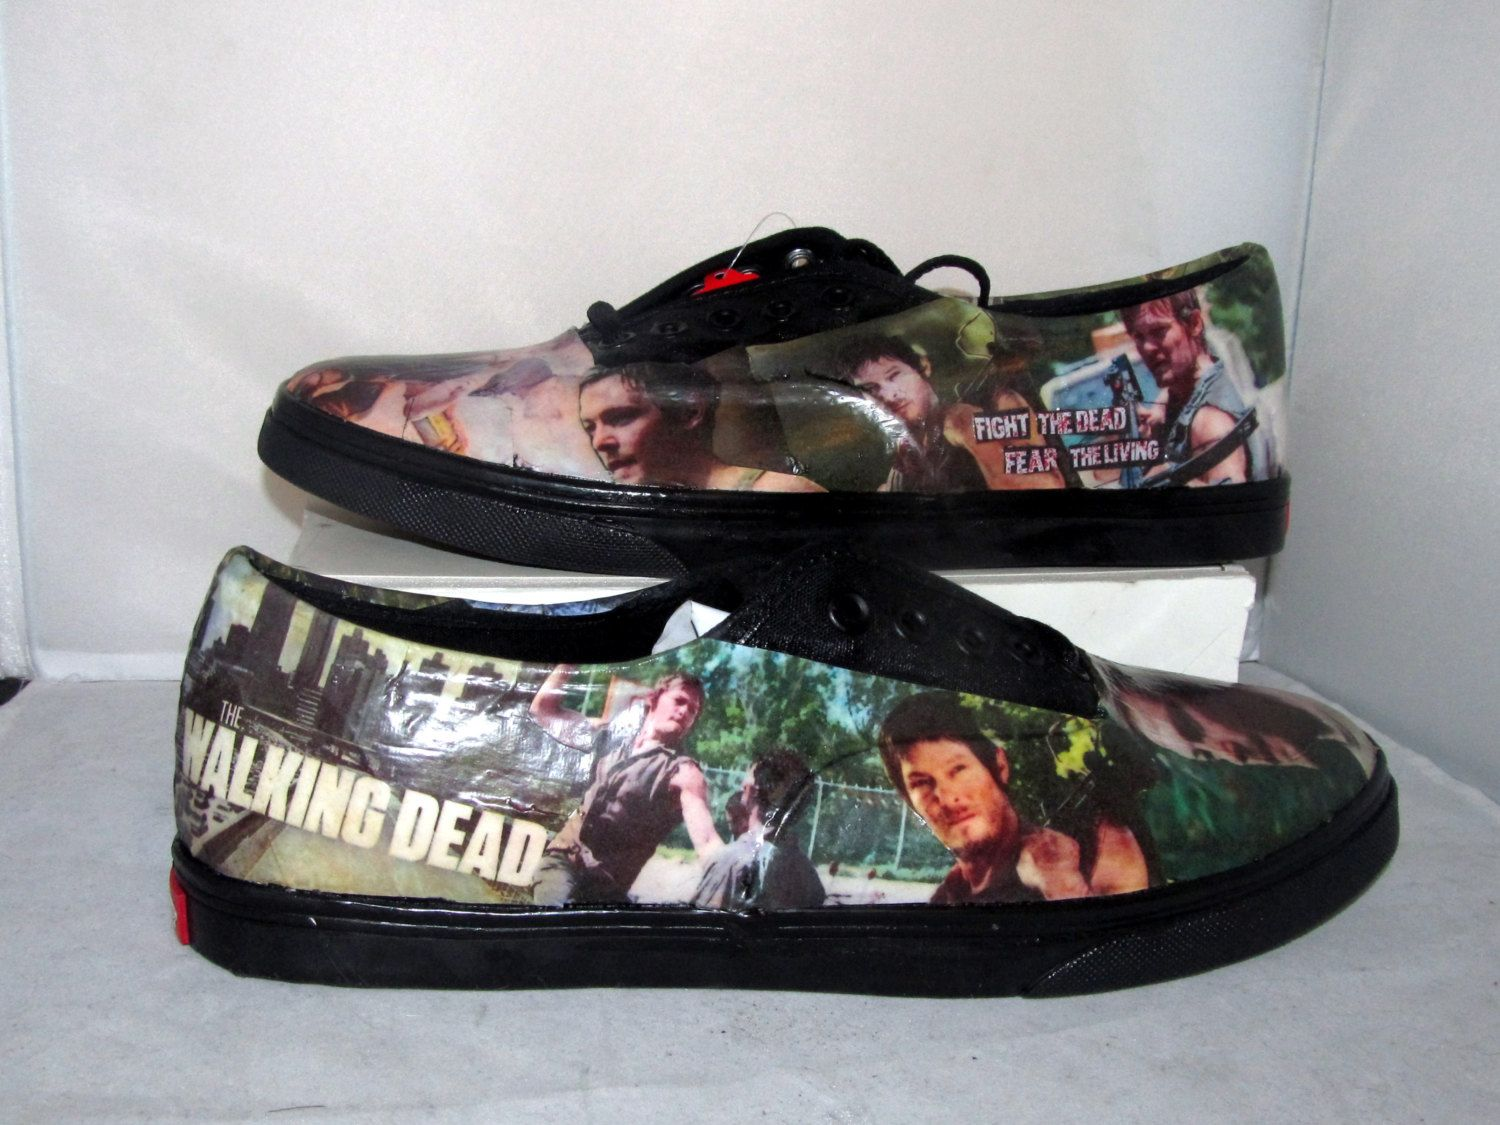 Walking dead converse shoes for sale - The Walking Dead Daryl Dixon Zombie Vans Made To By Custombykylee 90 00